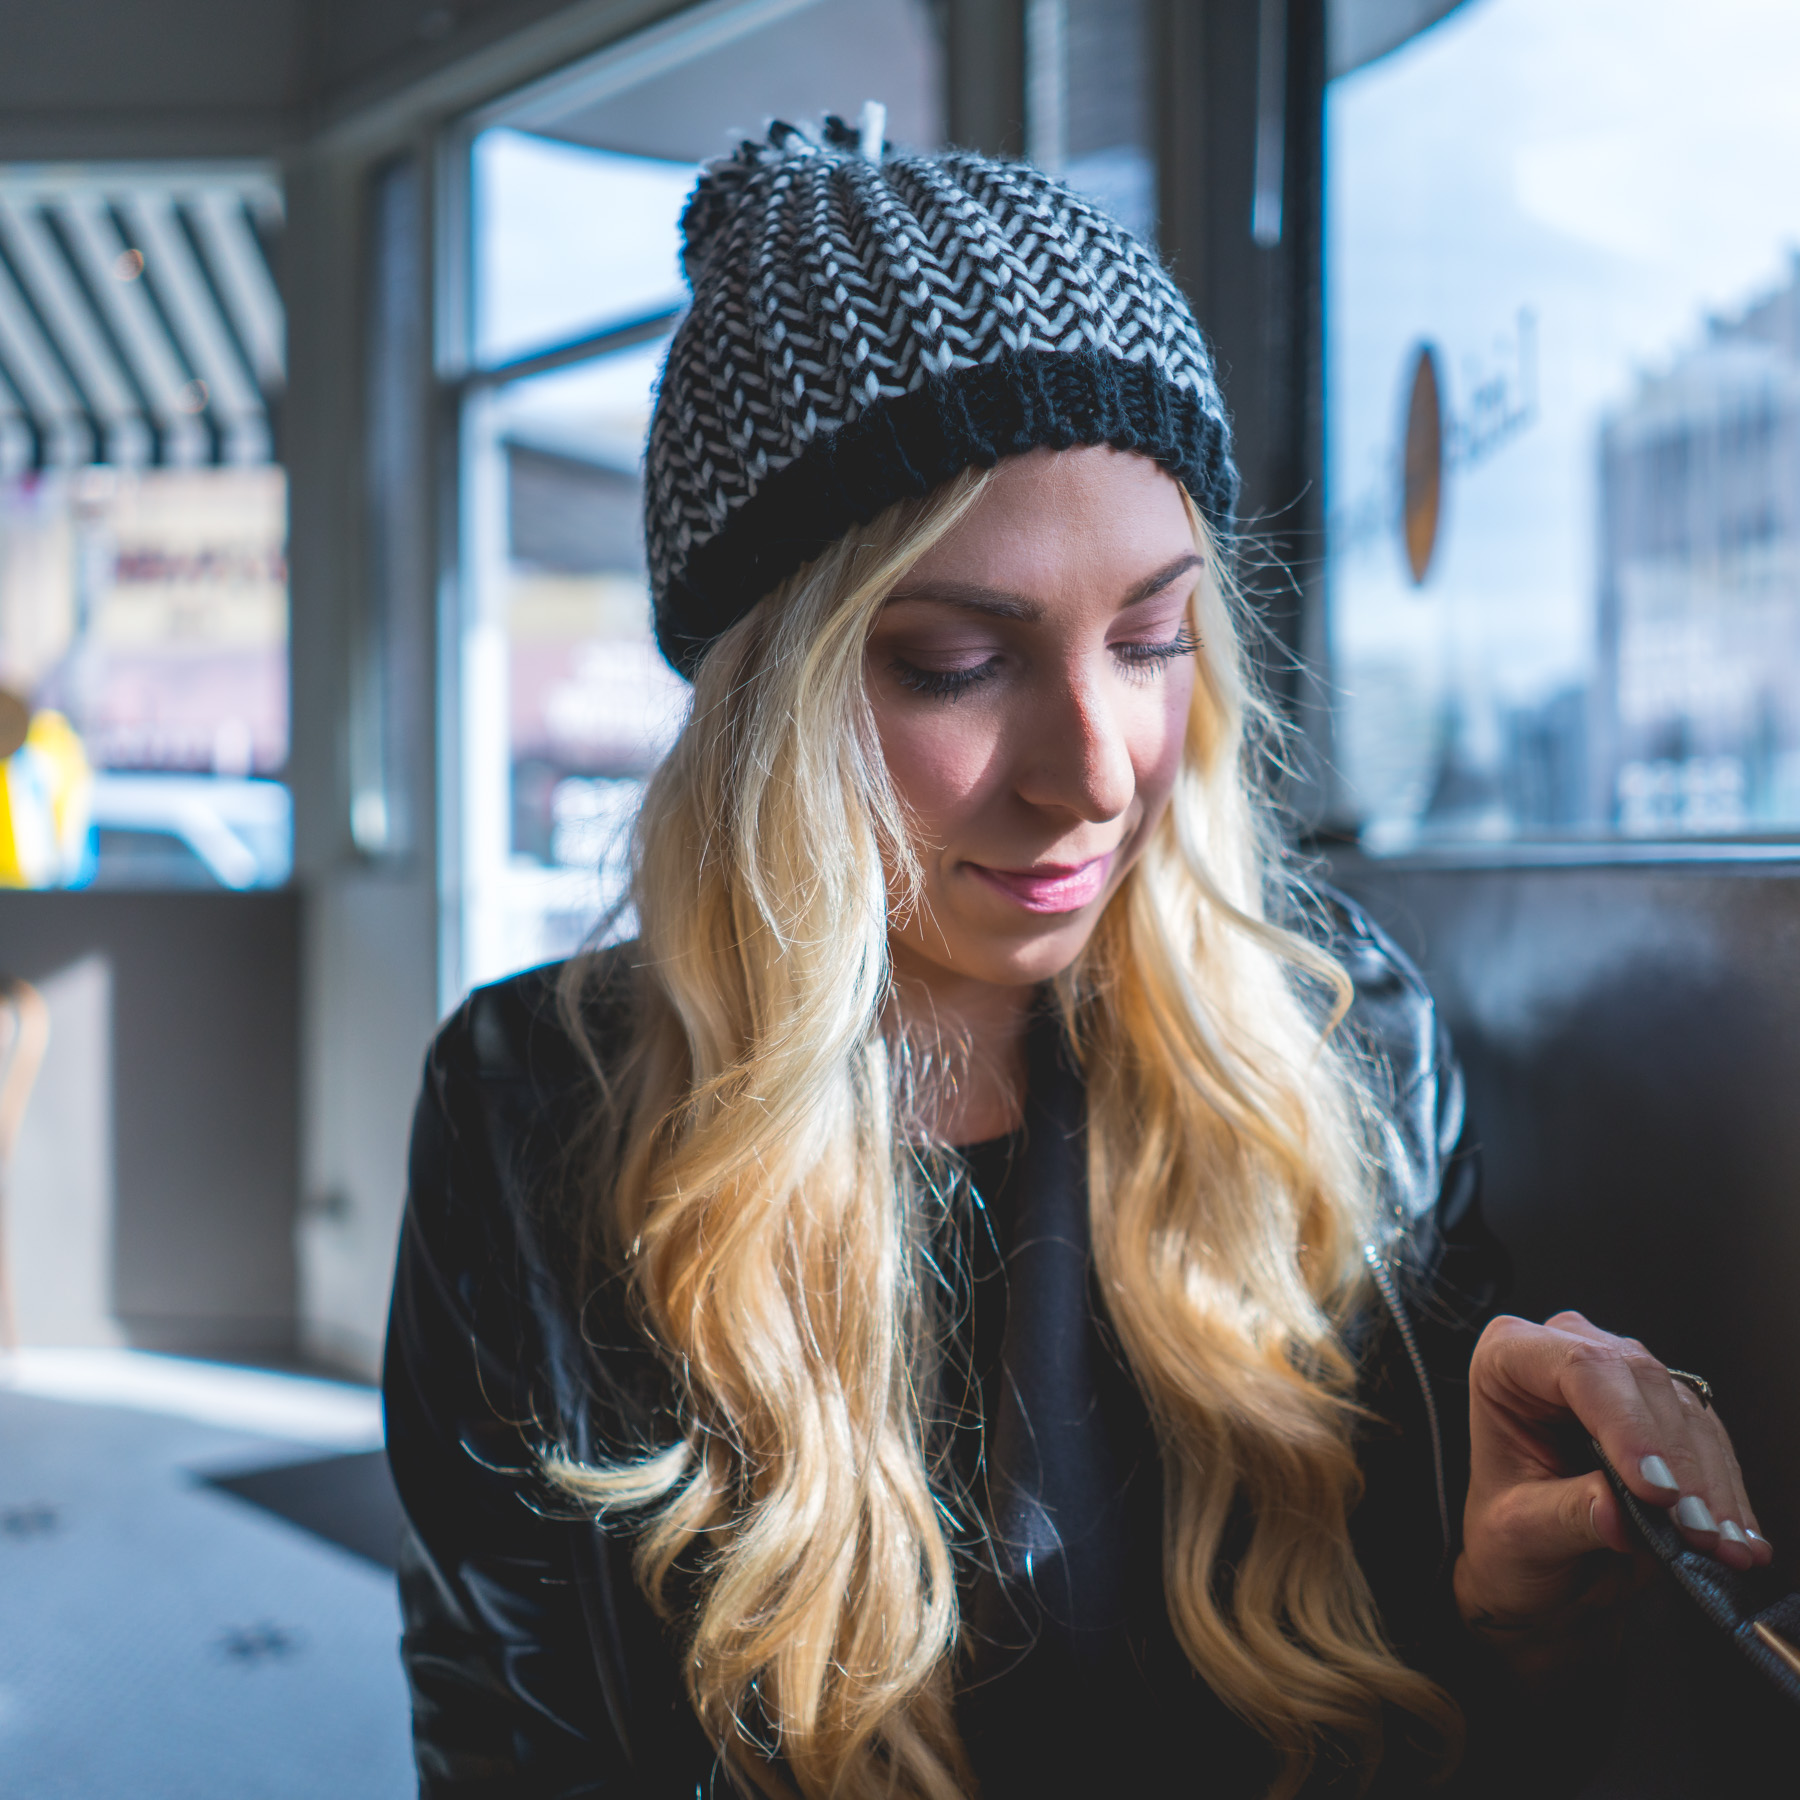 brandi-matthews-rock-rouge-beanie-coffee-3